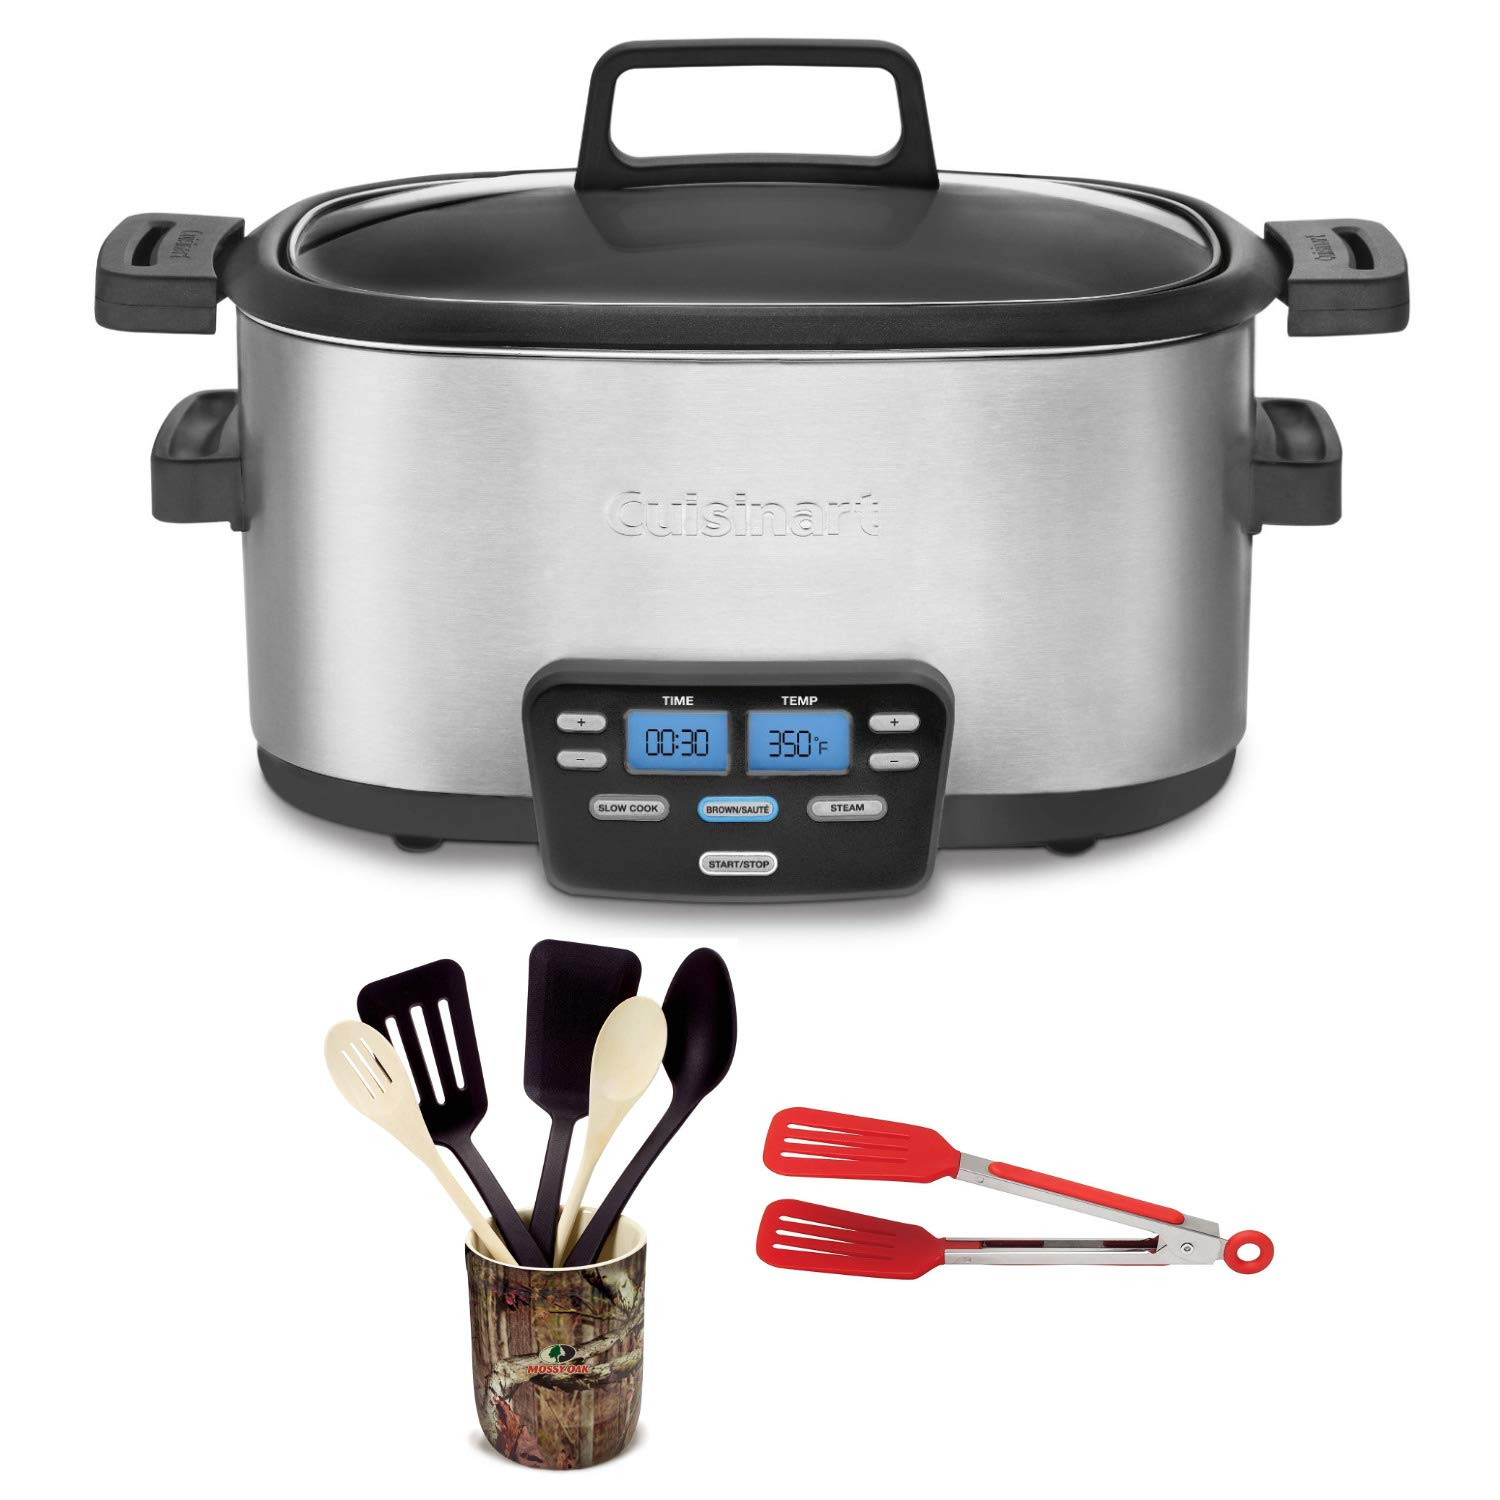 Cuisinart MSC-600 3-In-1 Cook Central 6-Quart Multi-Cooker: Slow Cooker, Brown/Saute, Steamer Includes Flipper Tongs and 6 pc Crock Set (Certified Refurbished)